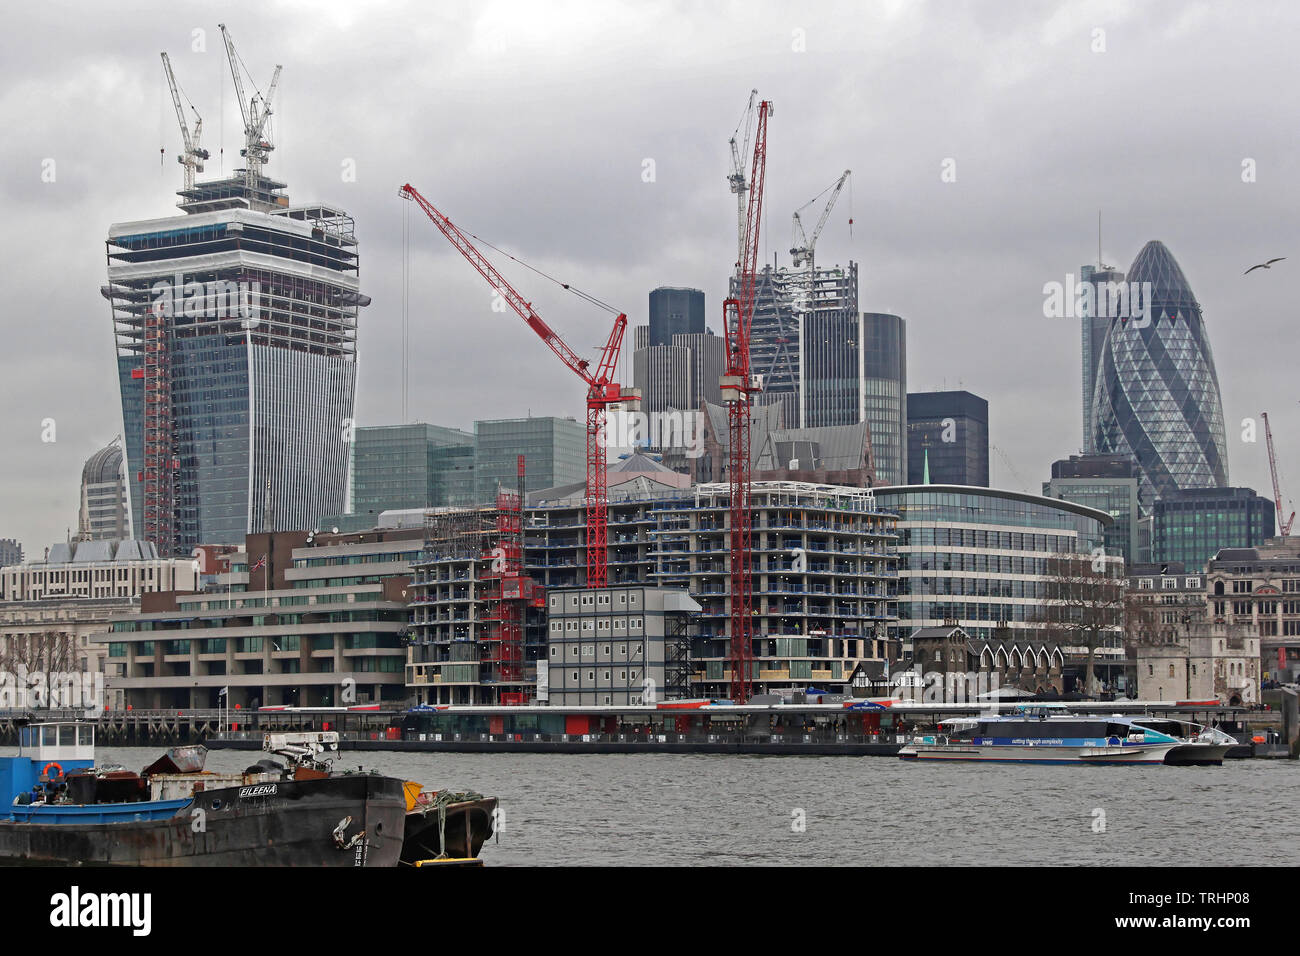 London, United Kingdom - January 25, 2013: Big Skyscraper Buildings Construction Site at City View From River Thames in London, UK. - Stock Image